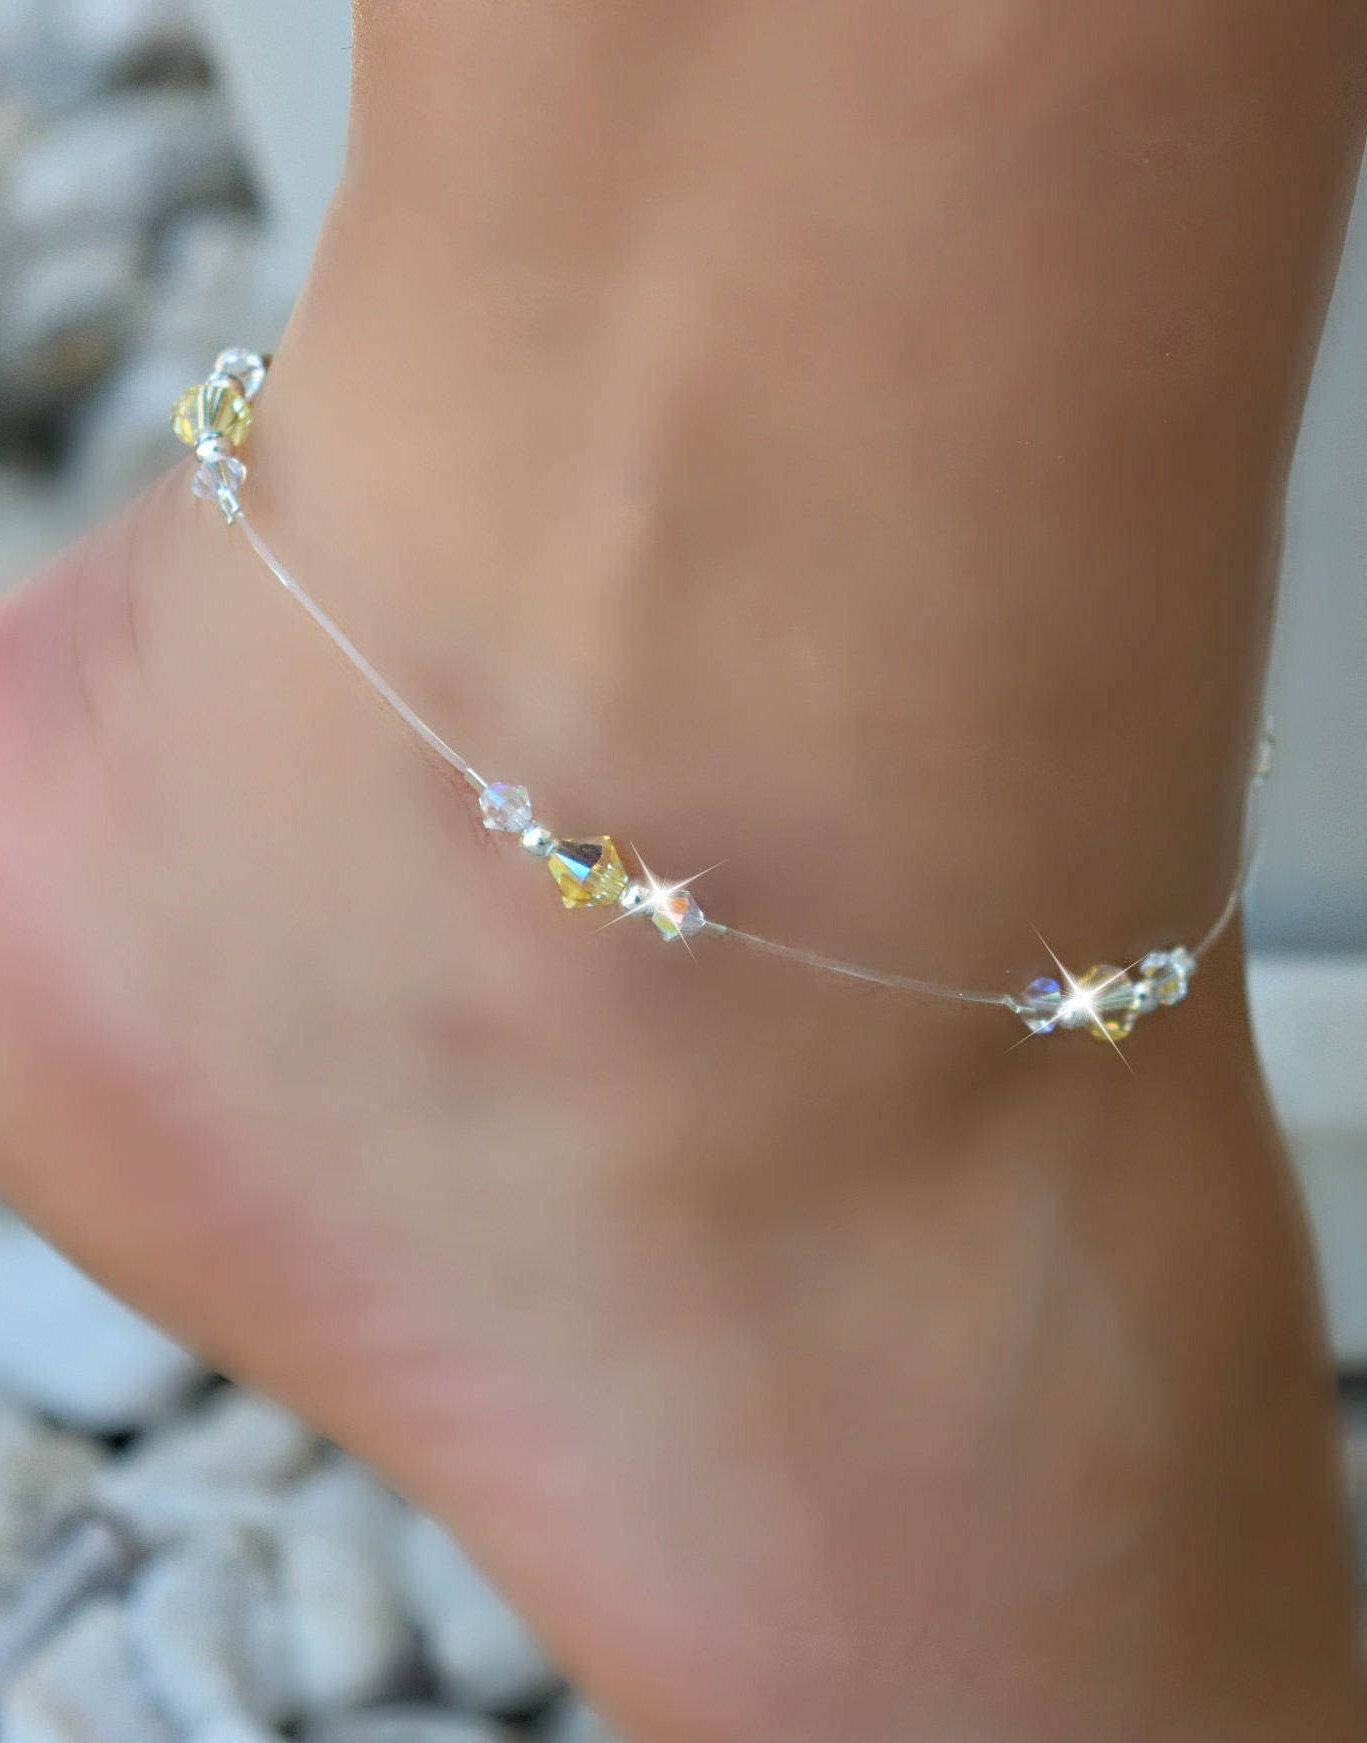 dangling jewelry az beads bling anklet bead plated filled gold ankle pretty sgs bracelet bracelets brass